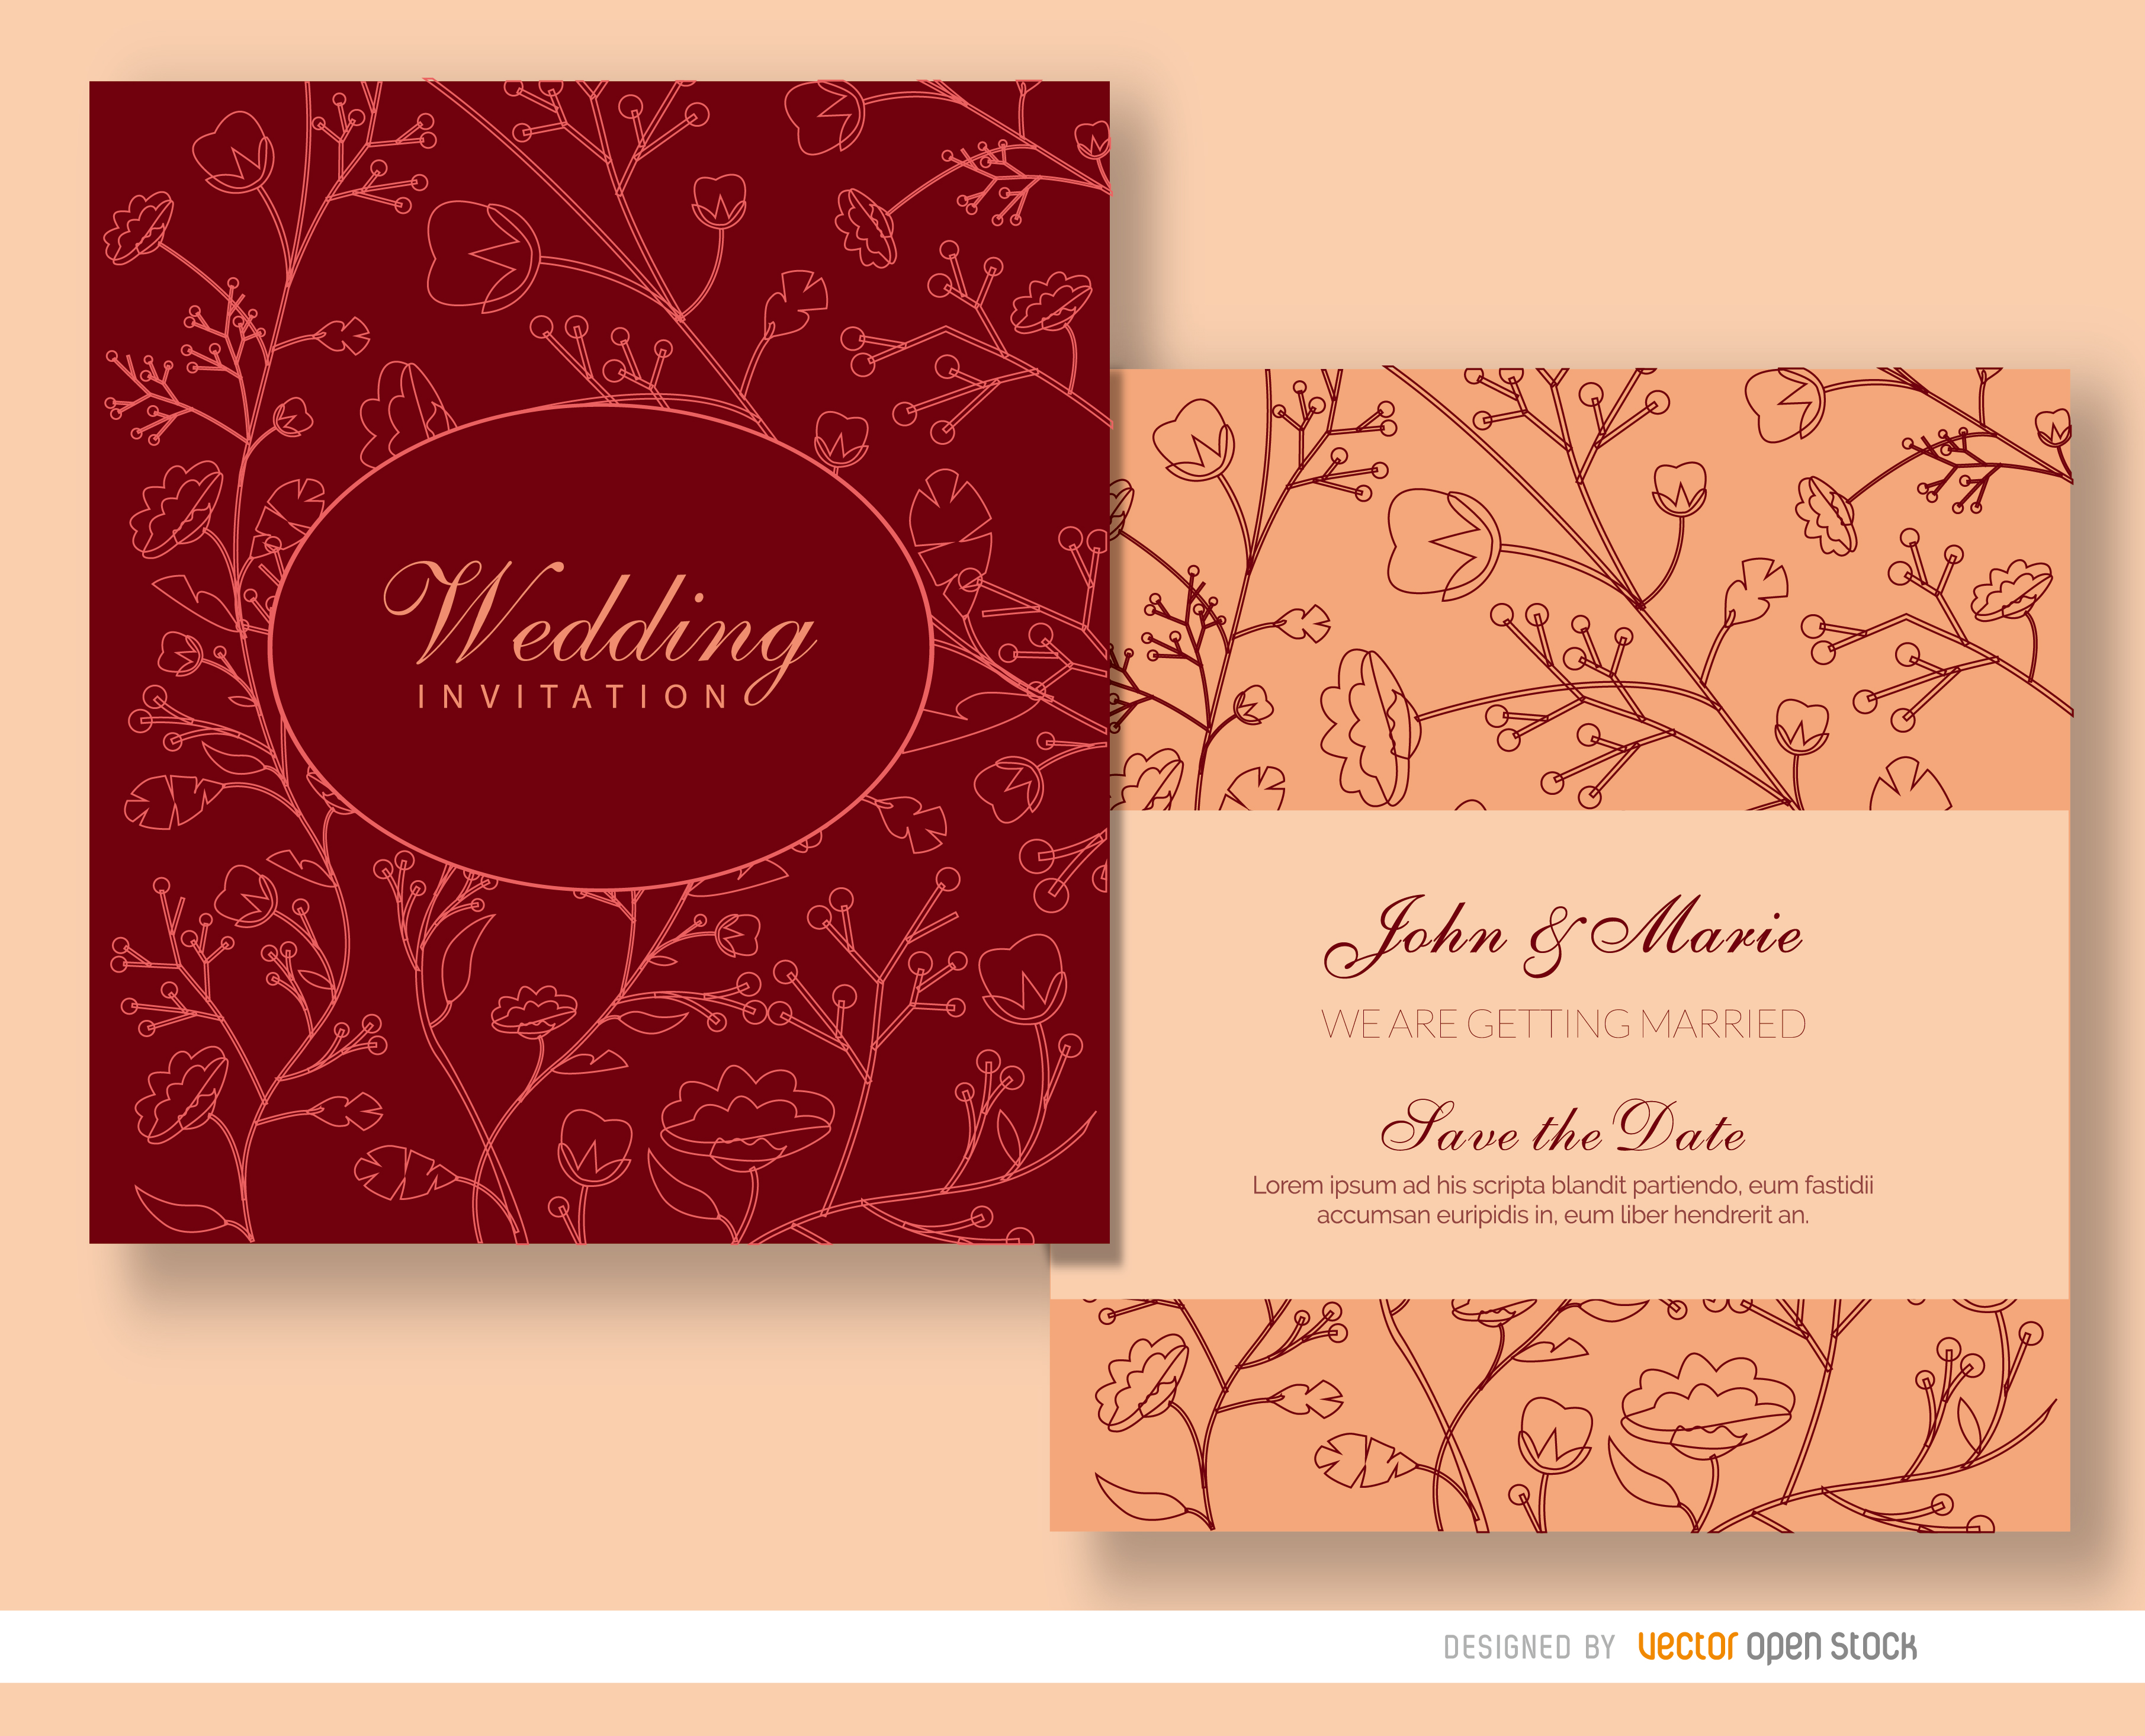 Wedding Invitation Text Background Material, Invitation Card ...